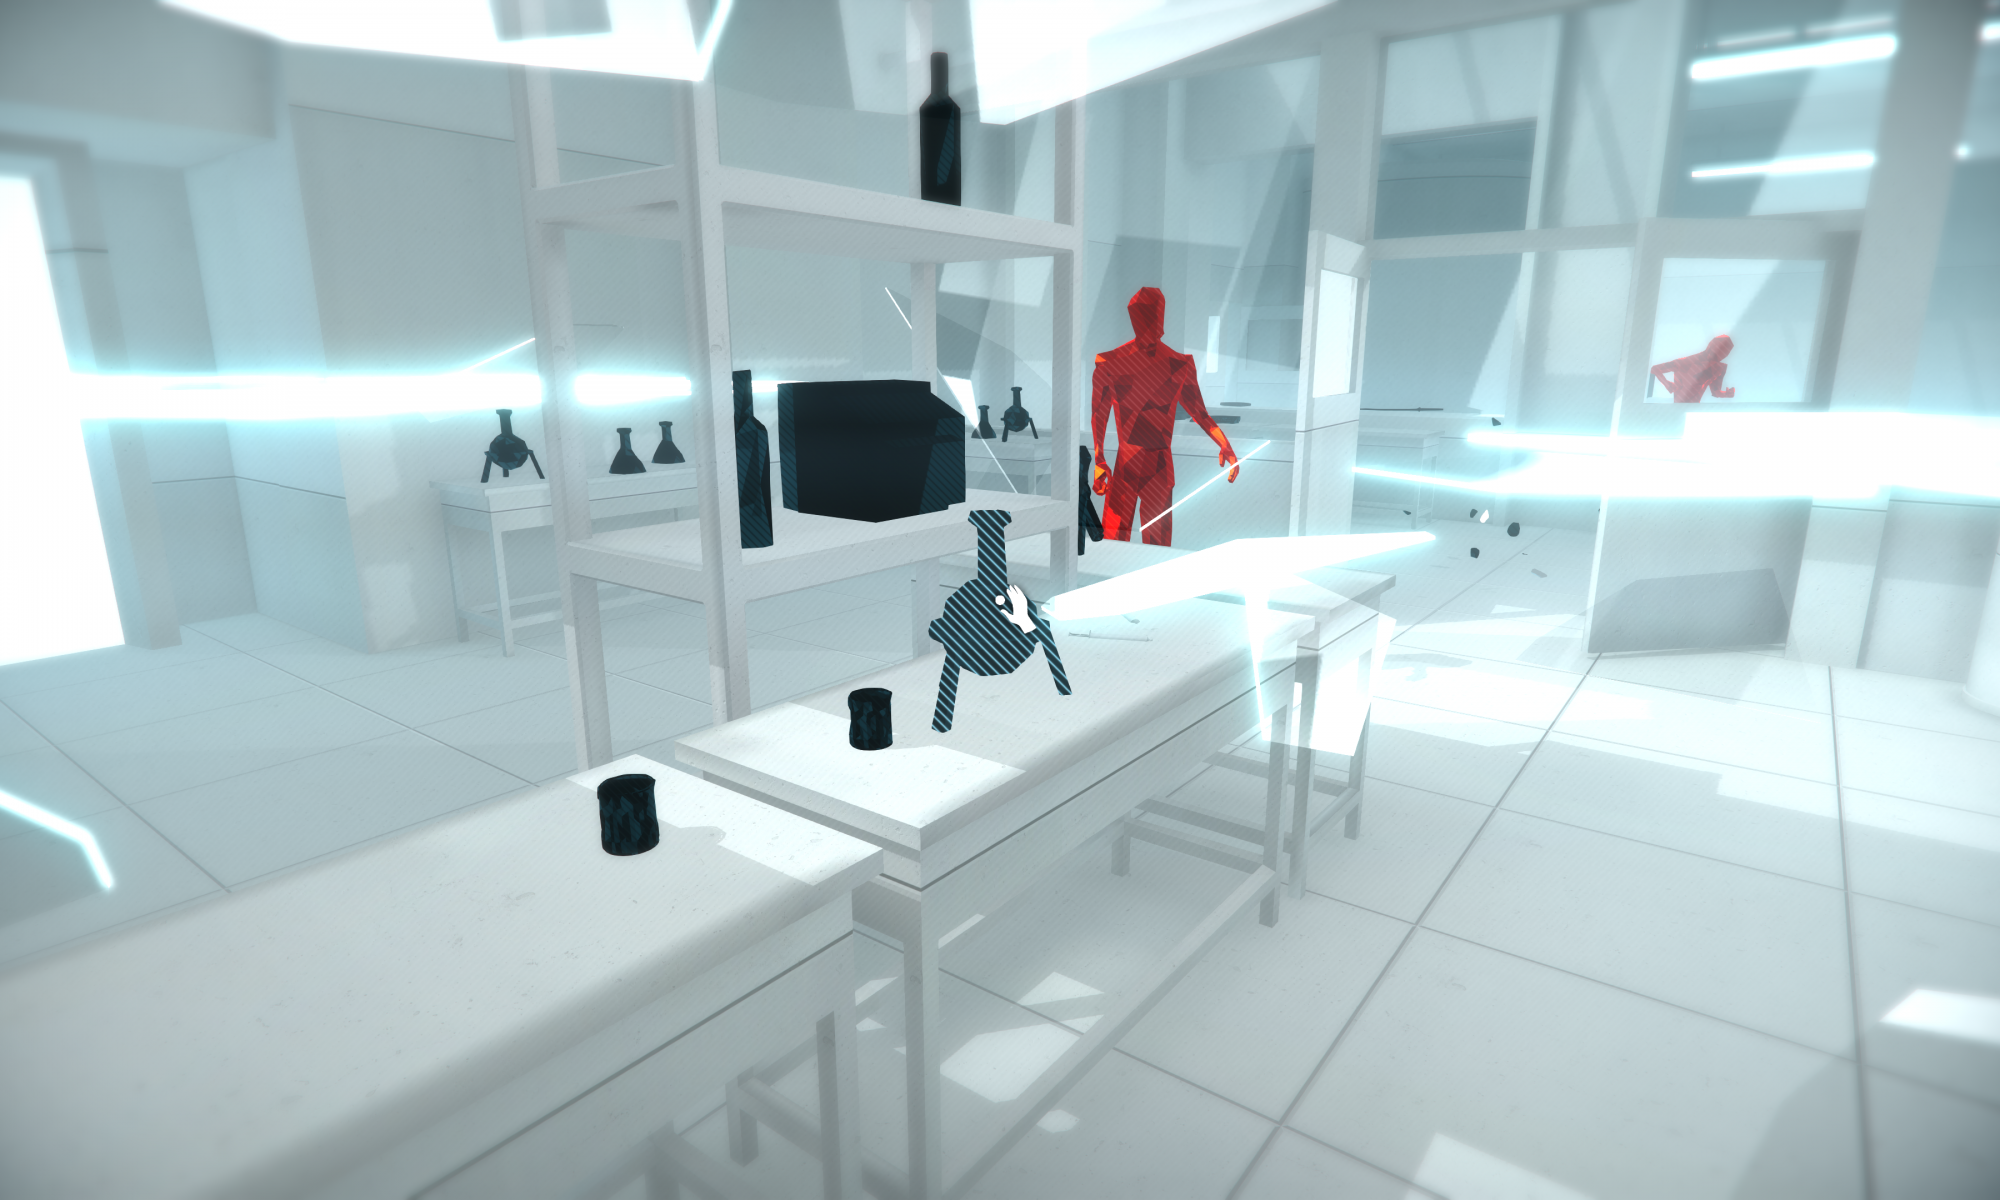 Screenshot showing a lab with the crosshair on a bottle with a pick up icon. Two red digiatalised AI figures are behind a table andtrhough a window.